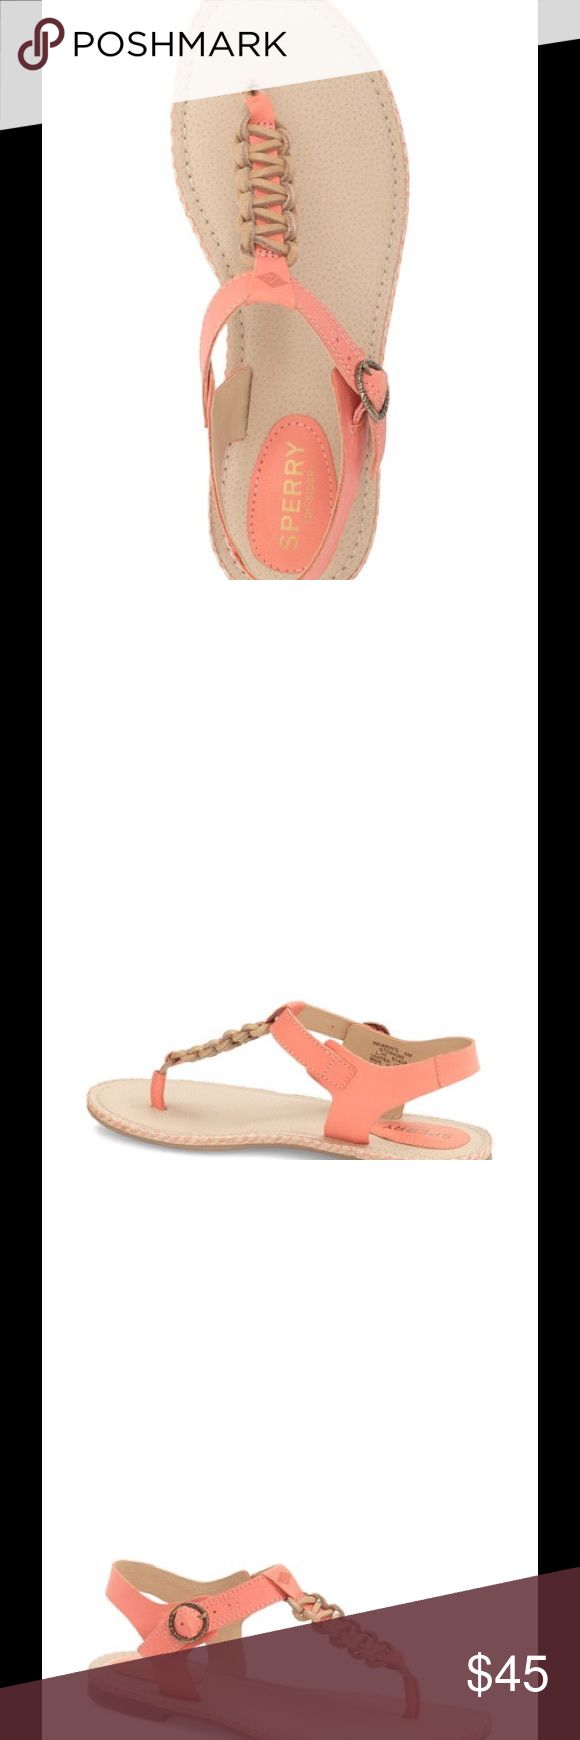 Coral Sperry Anchor Sandals Cute Coral Comfort Sperry Shoes Sandals